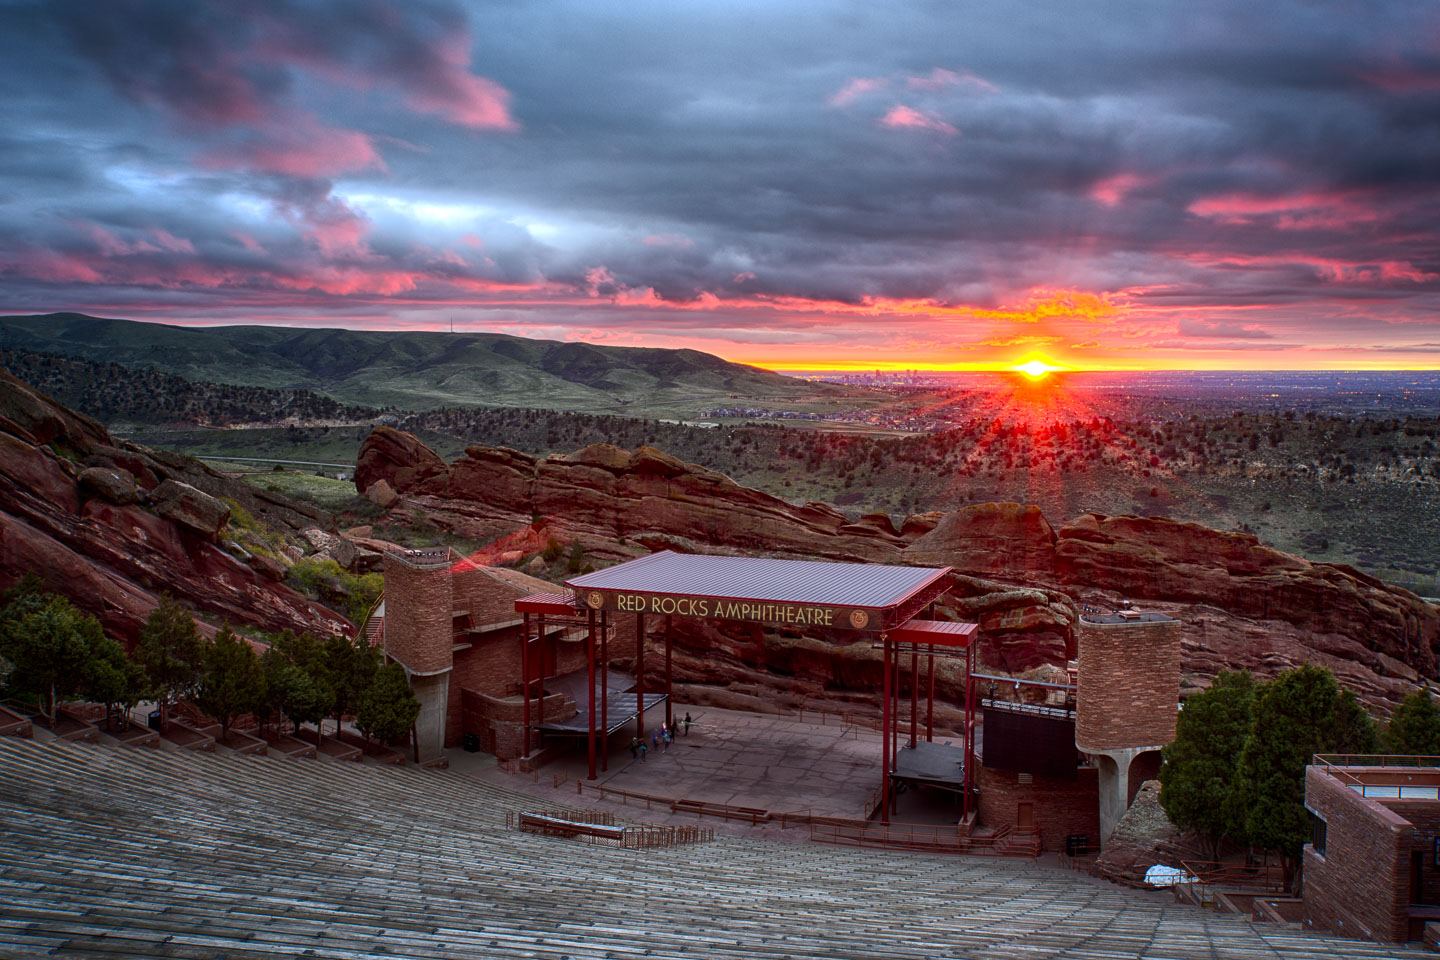 red-rocks-amphitheater-126.jpg